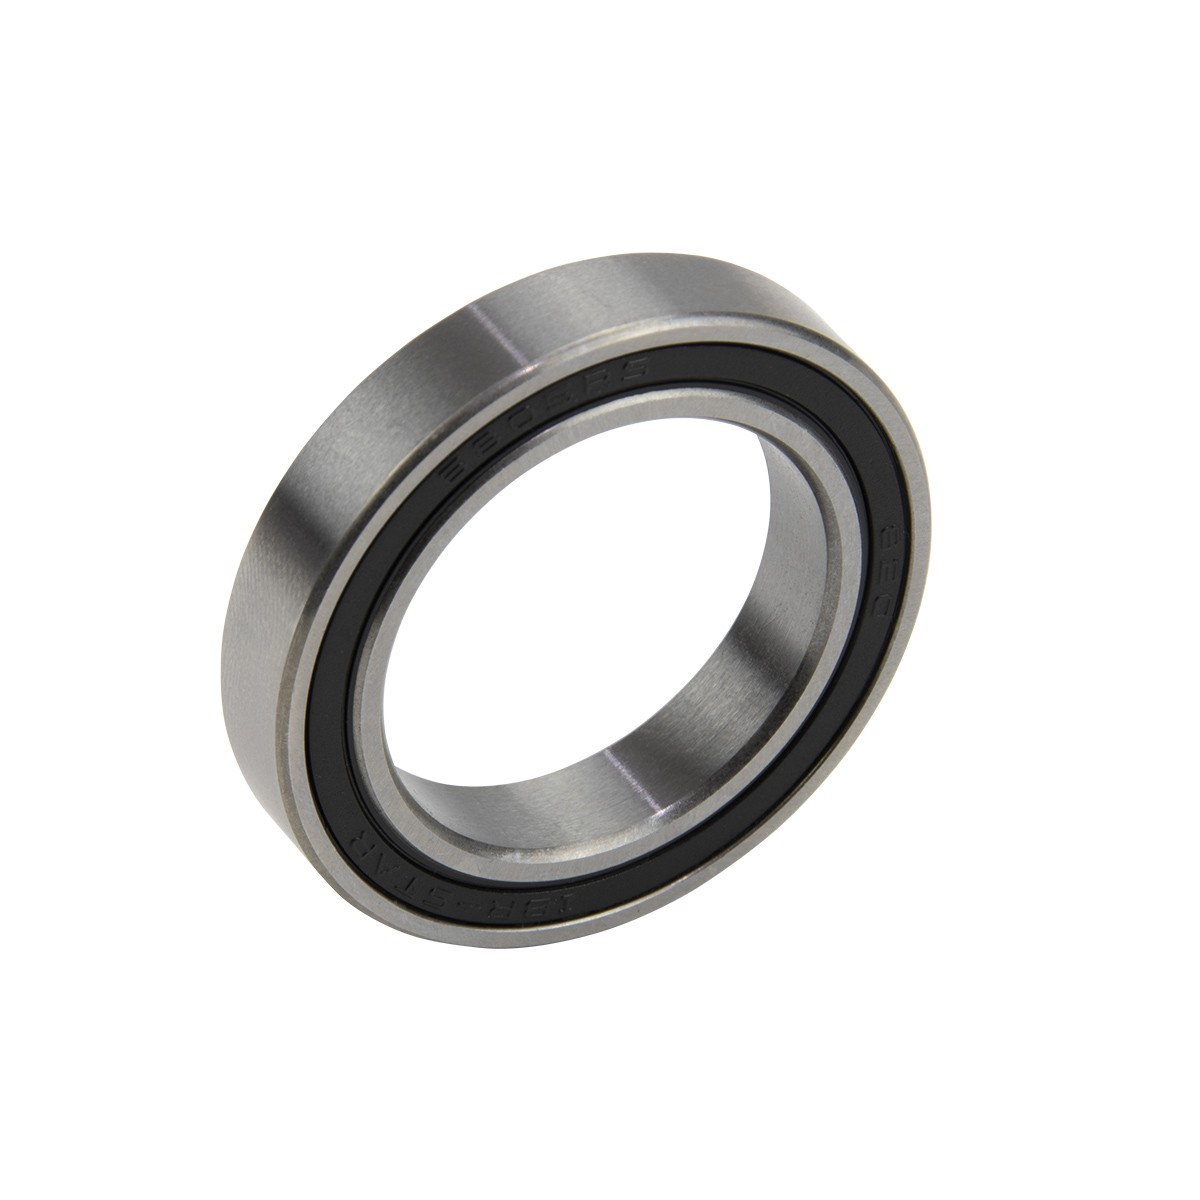 EXCESS PRO REAR BEARING 6902 28x15x7